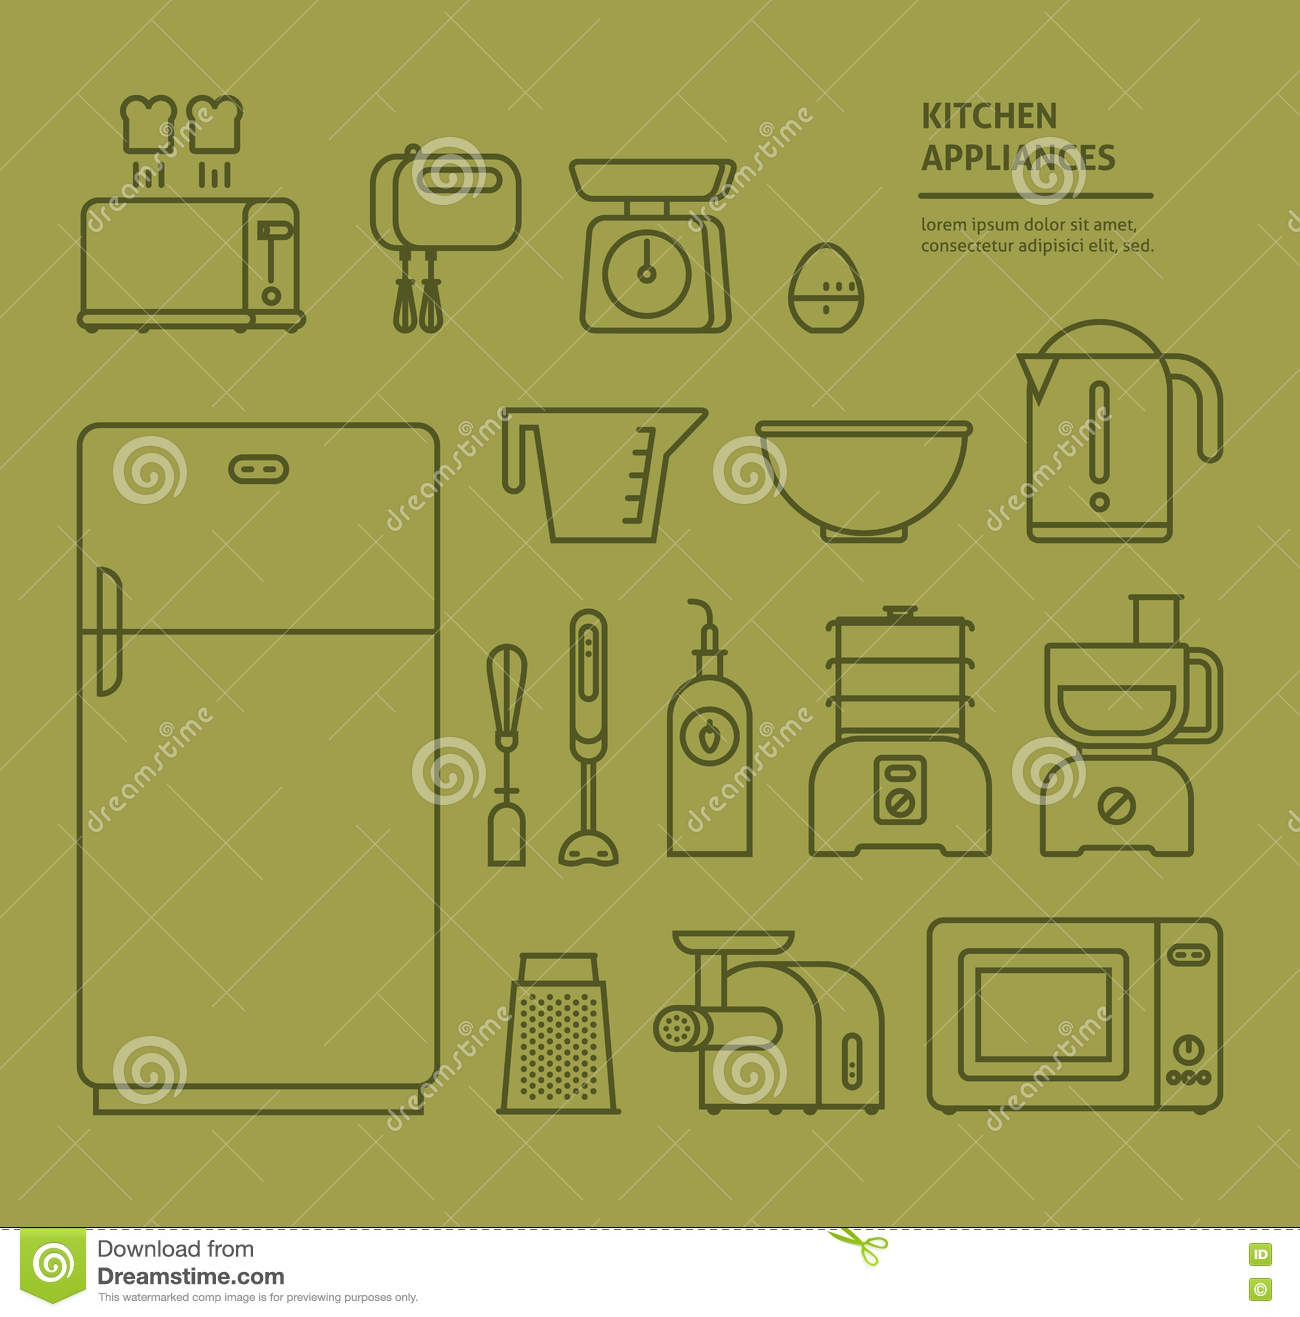 Household icon set cartoon vector for Household appliances design